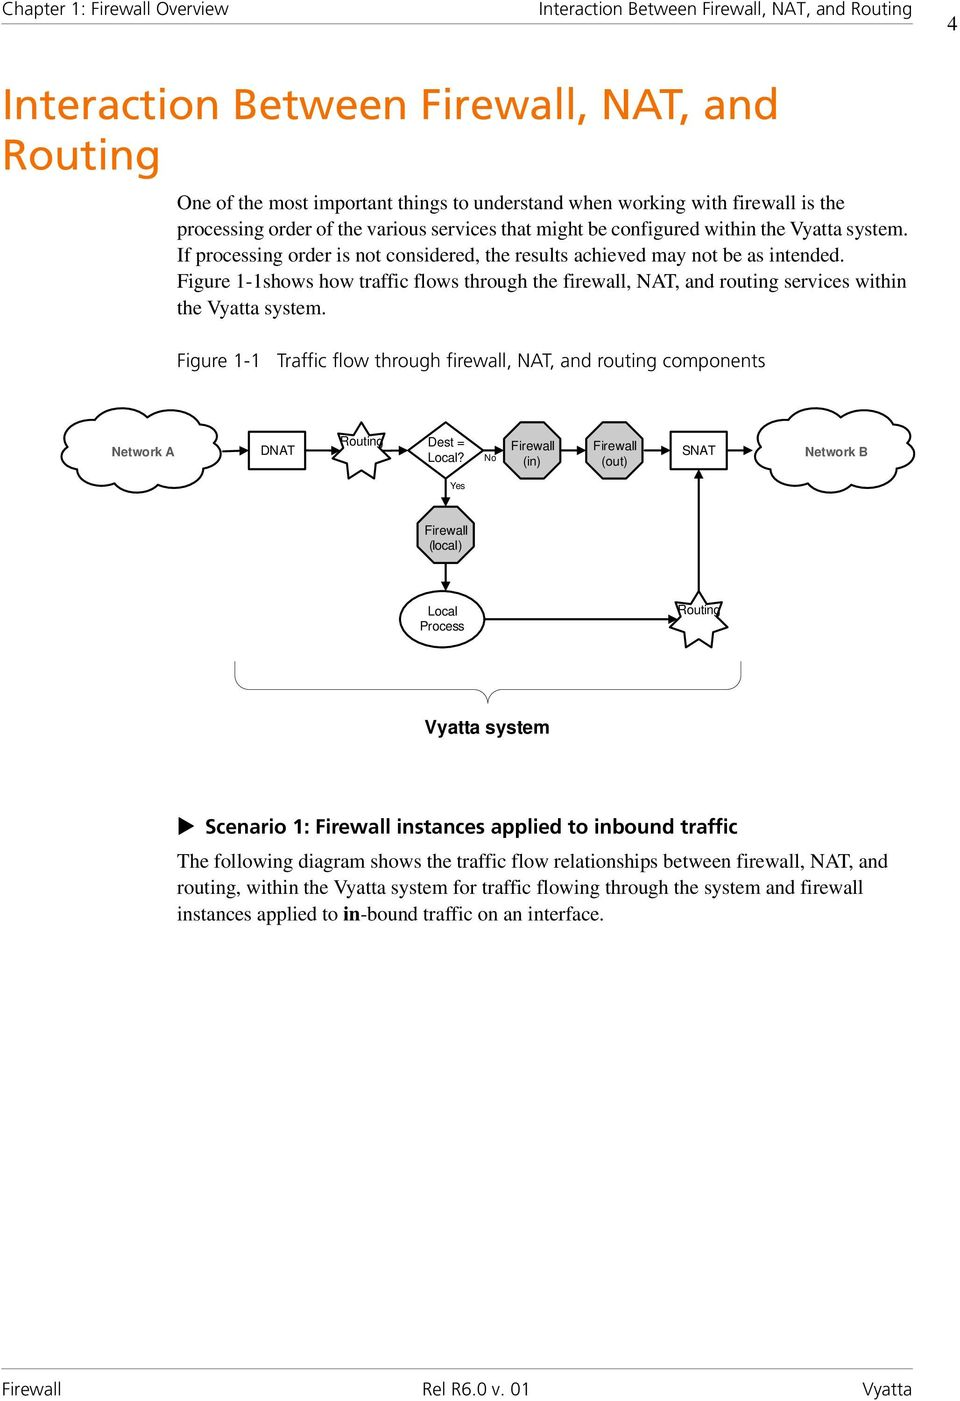 Figure 1-1shows how traffic flows through the firewall, NAT, and routing services within the Vyatta system.